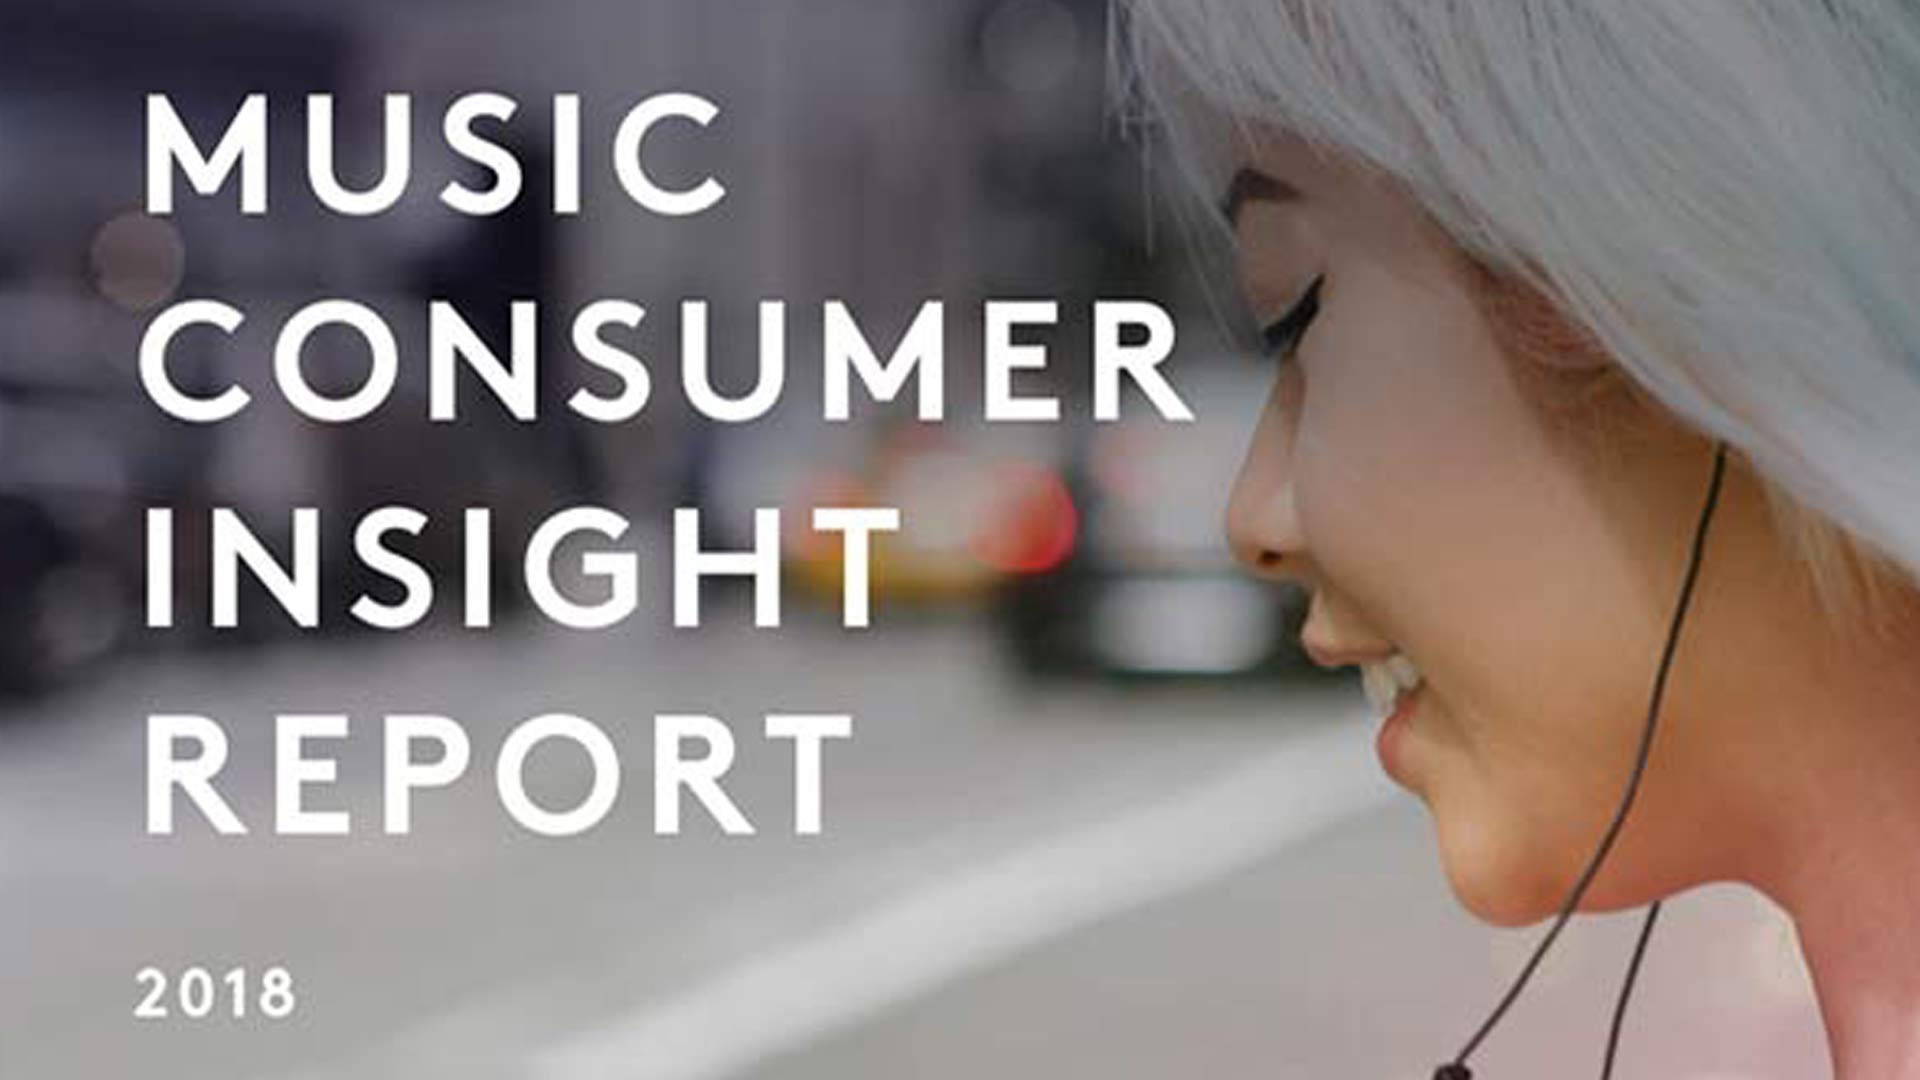 Fairness Rocks News IFPI Music Consumer Insight Report 2018